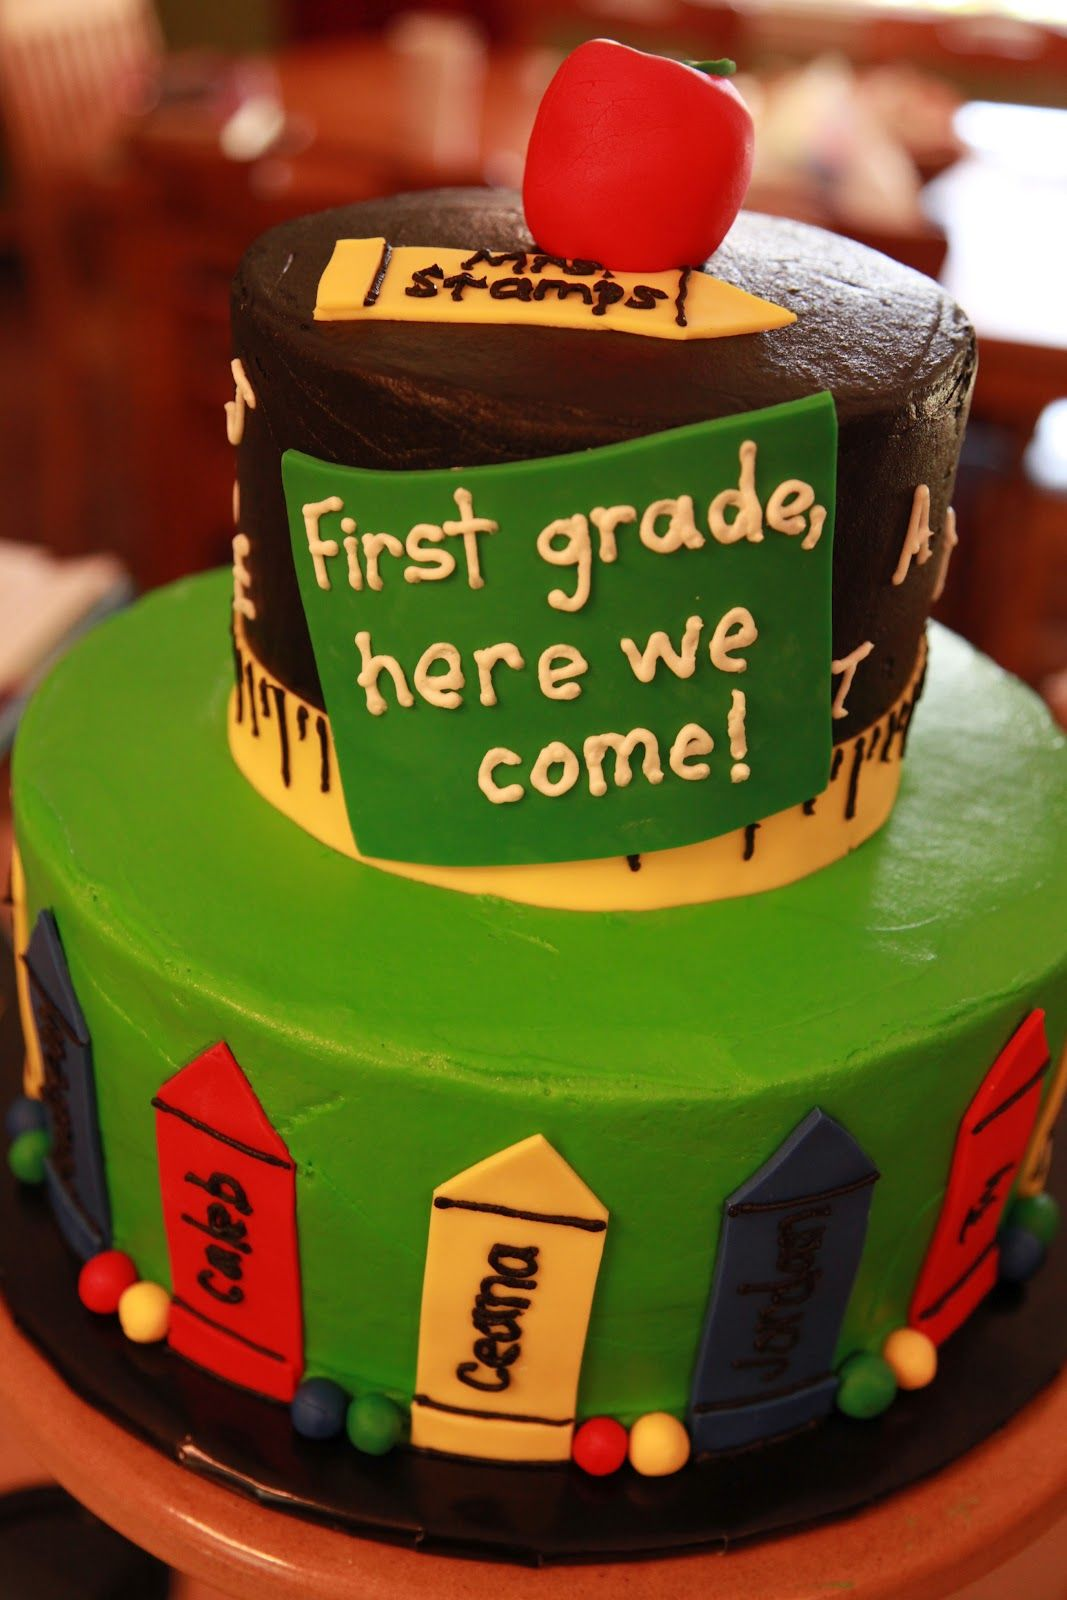 First Grade Here We Come Cake